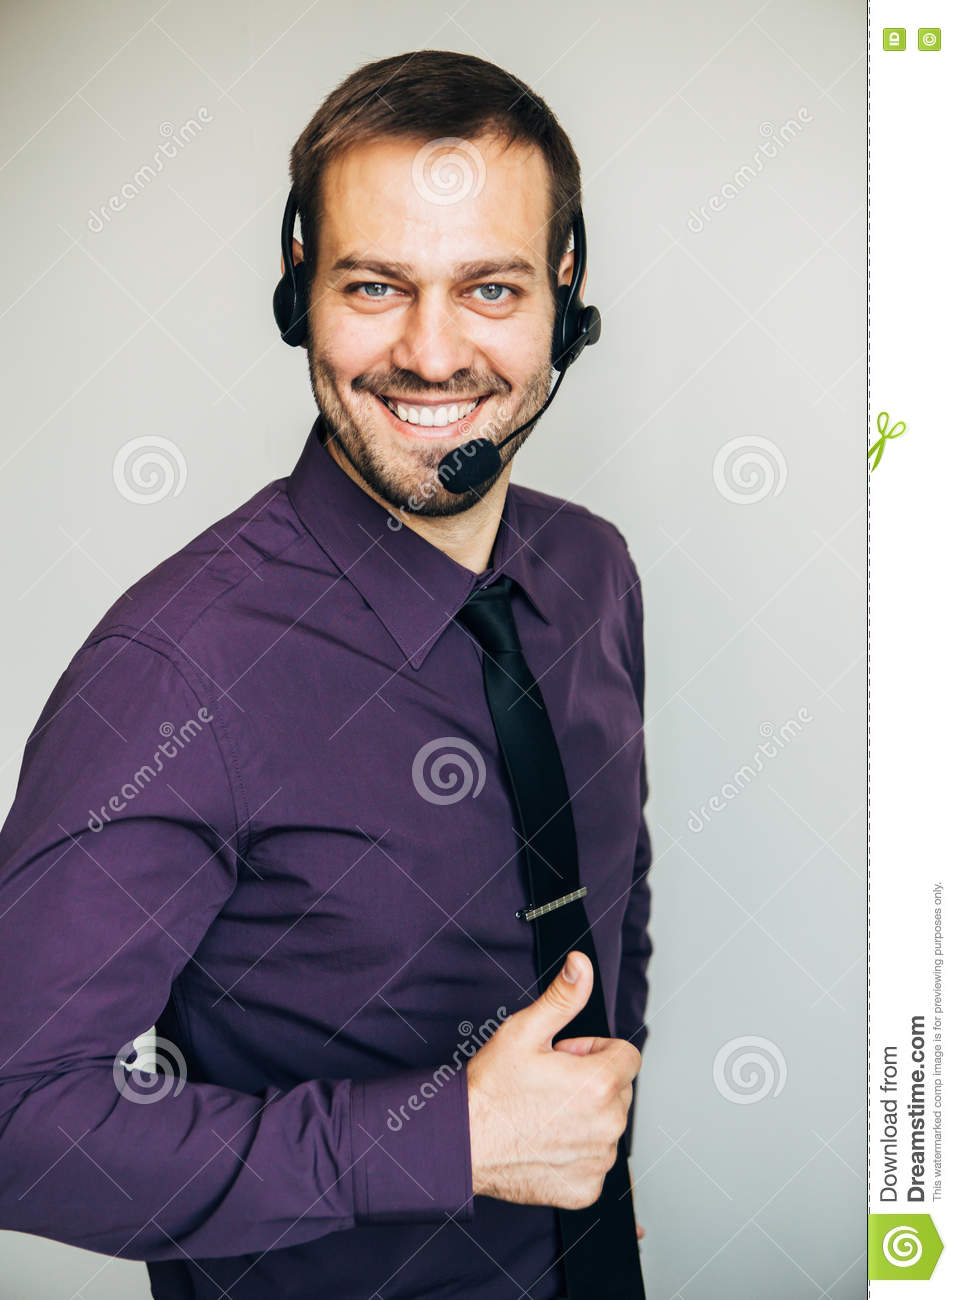 Portrait of handsome young male operator in headset looking at camera and smiling while standing against white